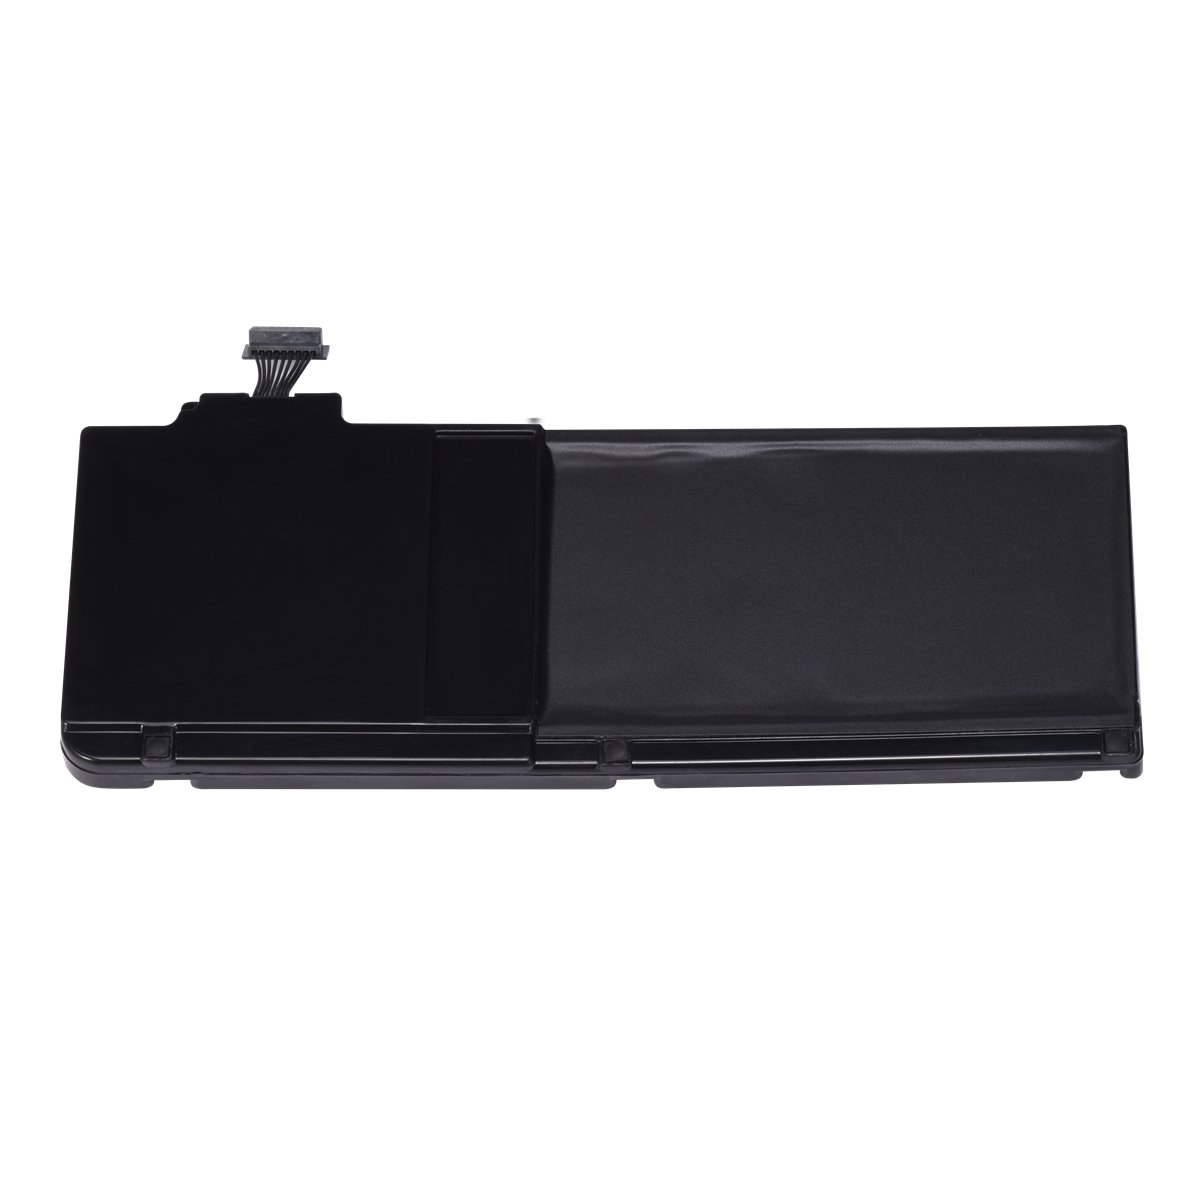 iProPower A1322 Laptop Battery for Apple MacBook Pro 13 inch A1278 2009-2012Version(6000mah) by iProPower (Image #4)